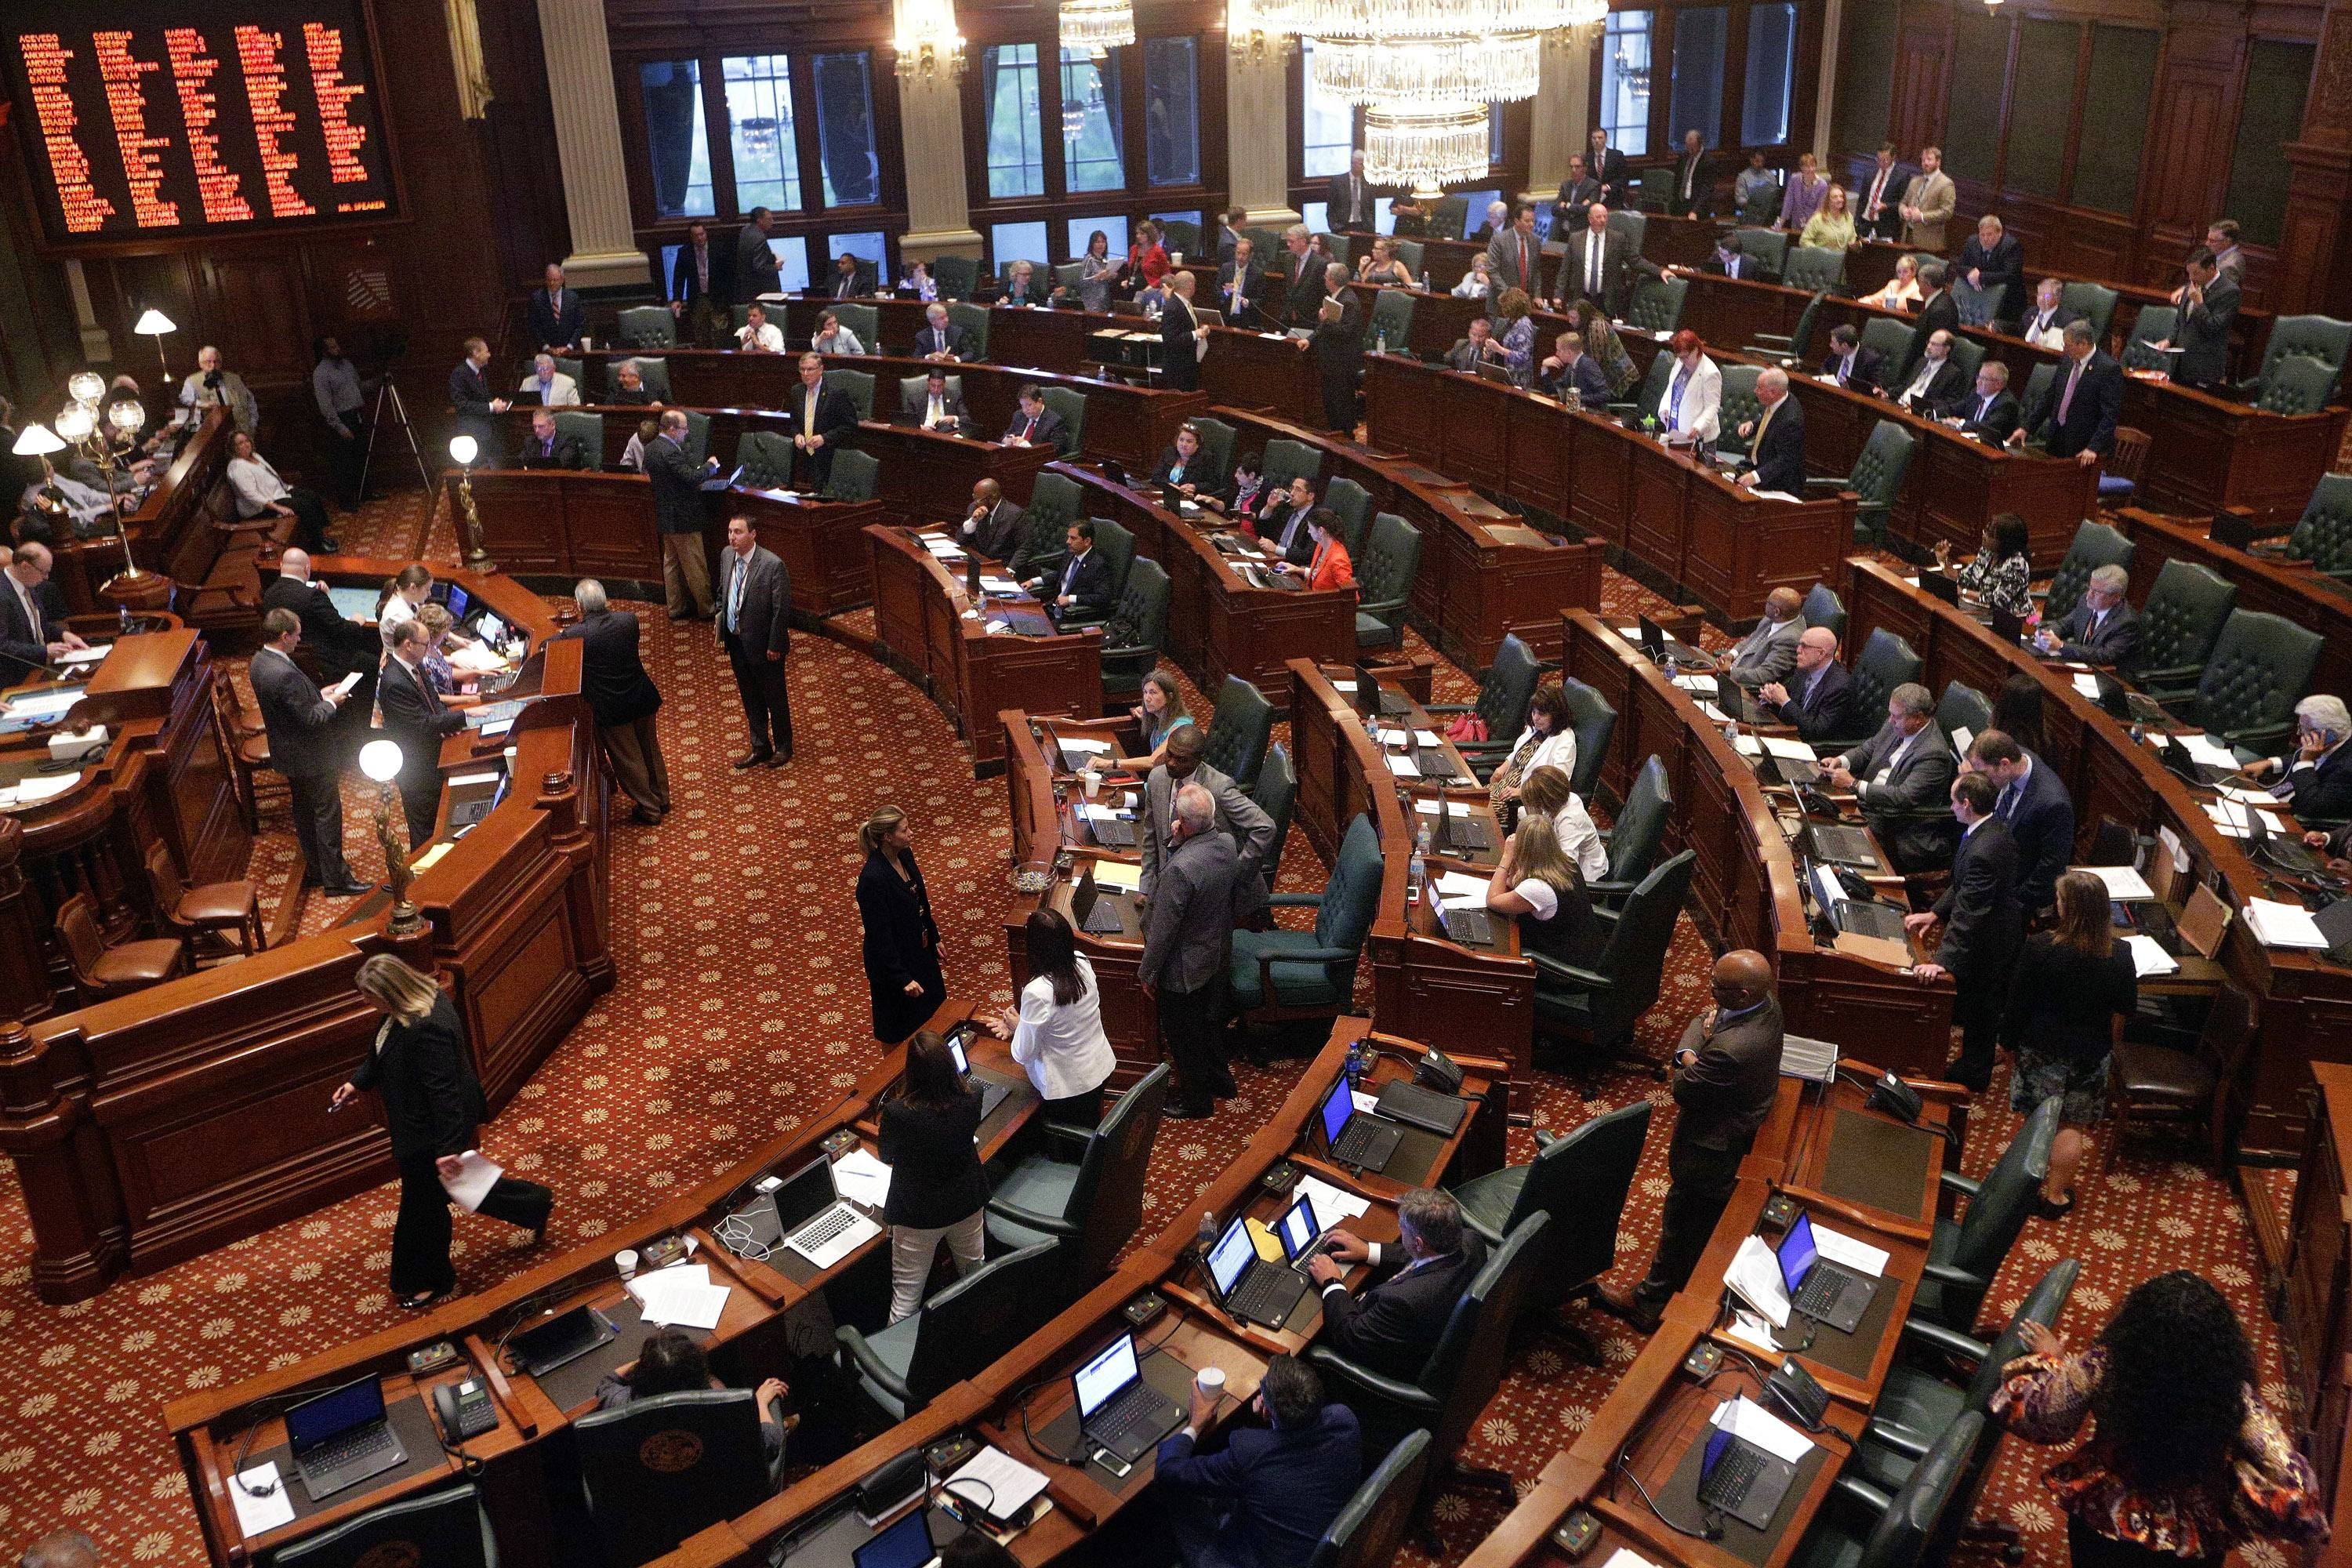 While Illinois lawmakers struggle to close an $8 billion budget hole, the state is losing more than even more revenue because of tax breaks.